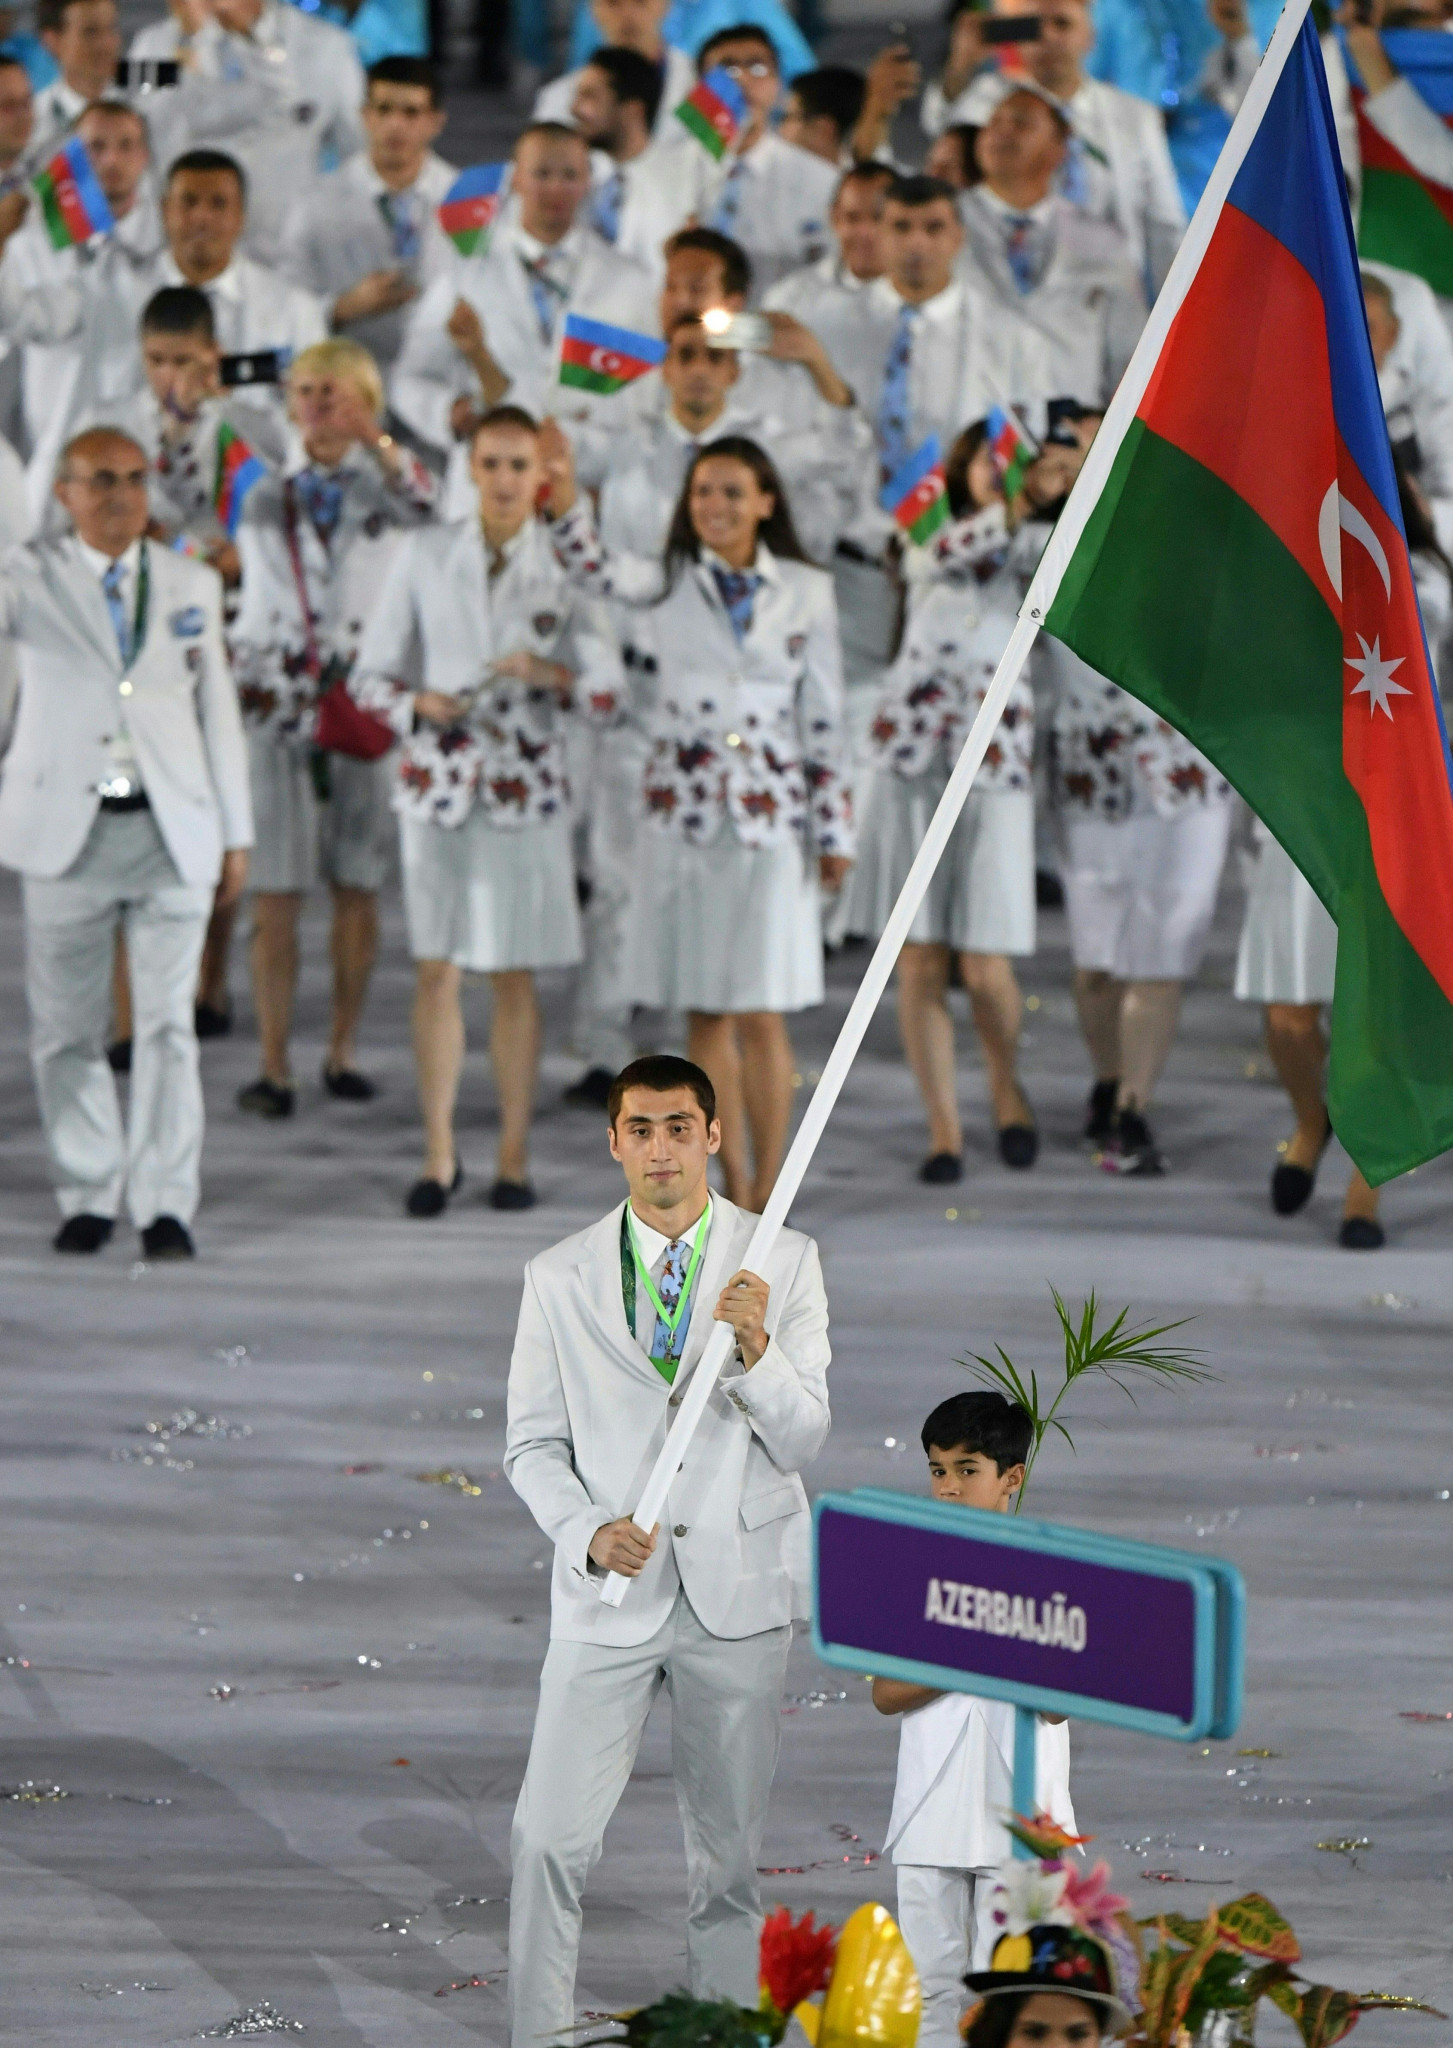 Under Azad Rahimov, Azerbaijan enjoyed a series of record-breaking Olympic performances - but they were often overshadowed by allegations of doping and corruption ©Getty Images